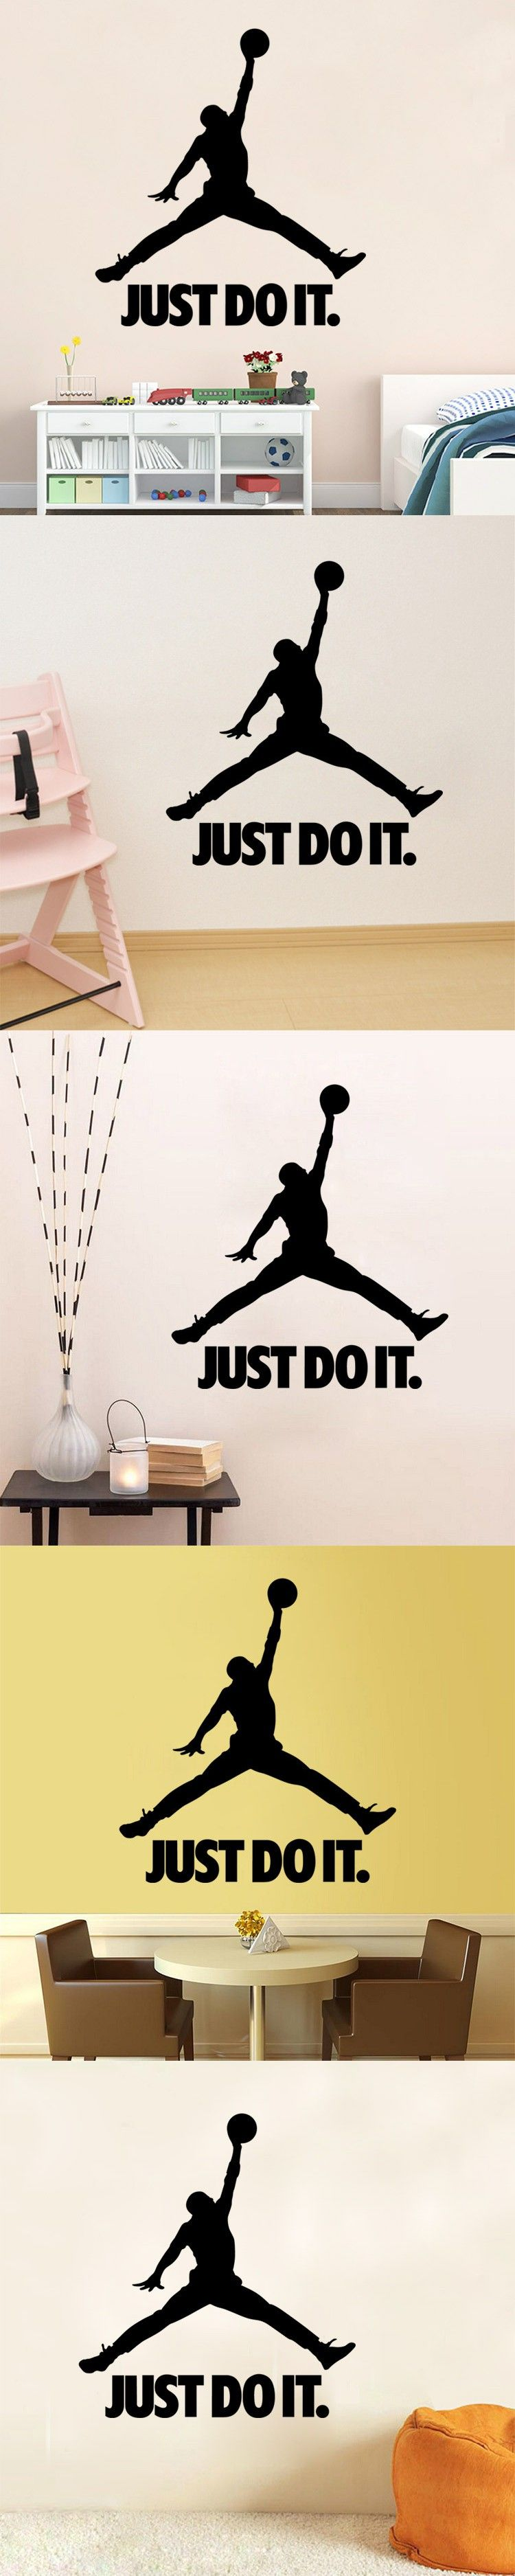 9334 michael jordan basketball player wall stickers for kids room 9334 michael jordan basketball player wall stickers for kids room diy home decorations just do it amipublicfo Images